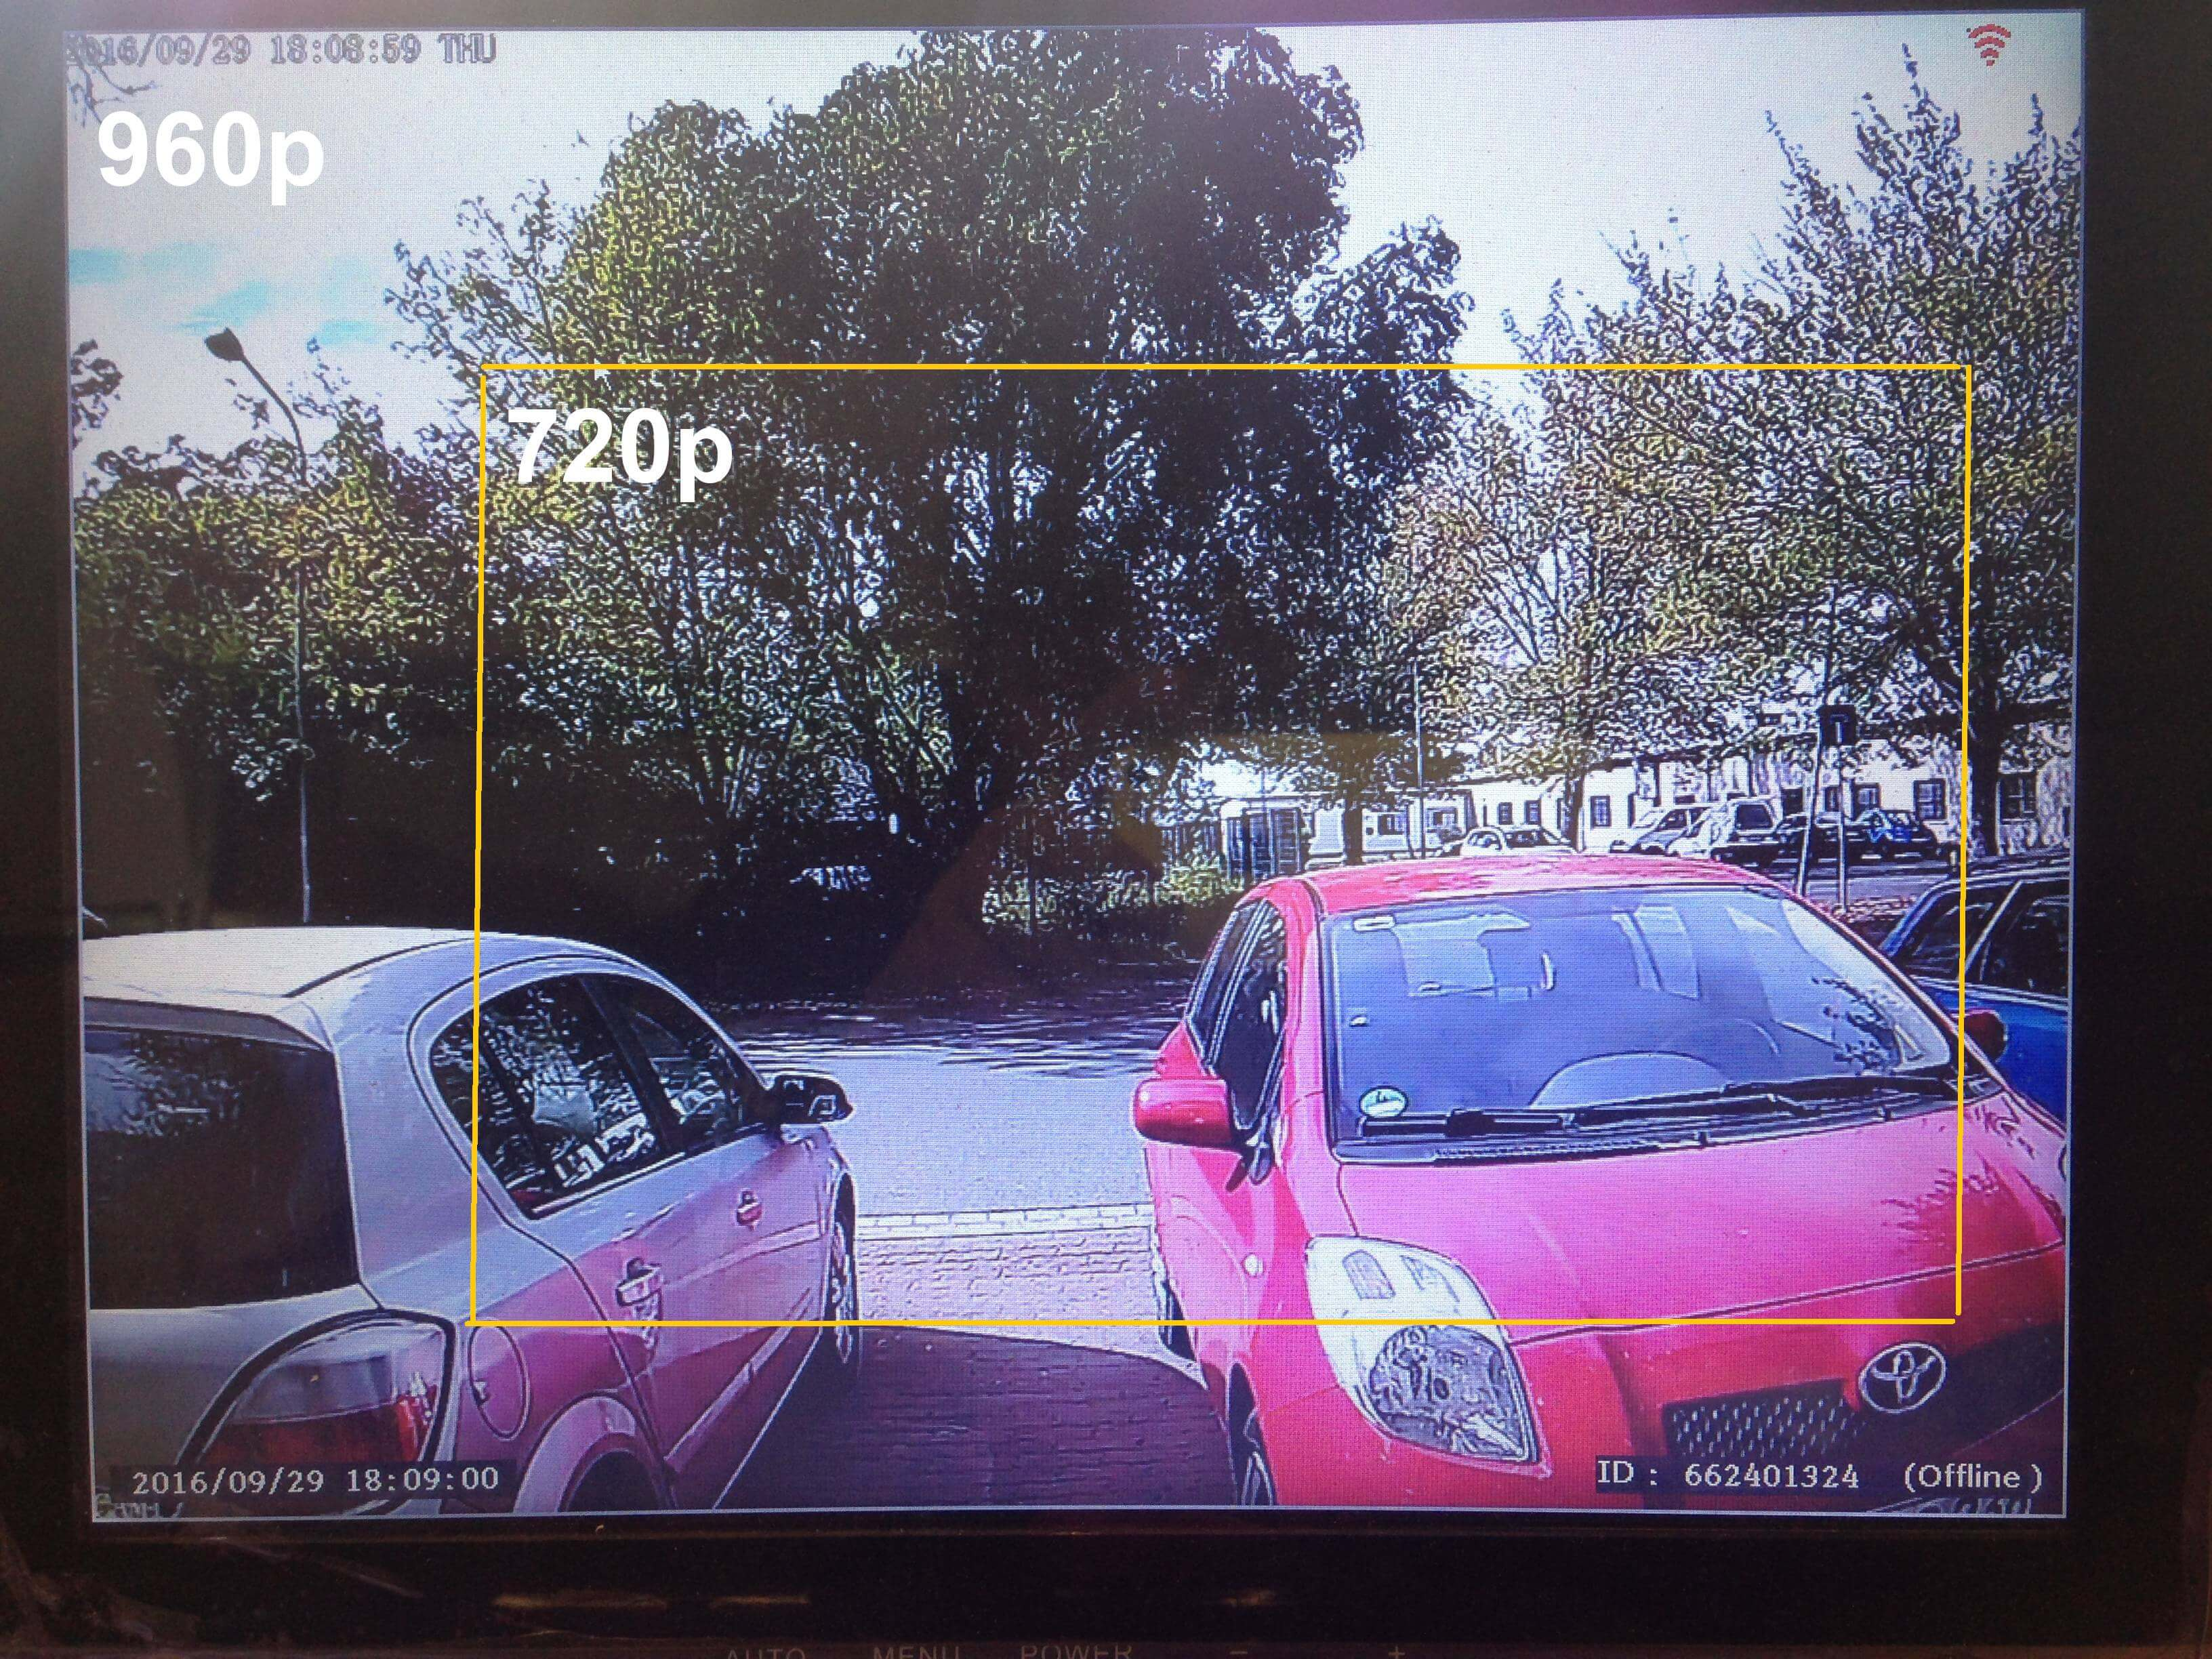 compare 720p to 960p resolution of camera